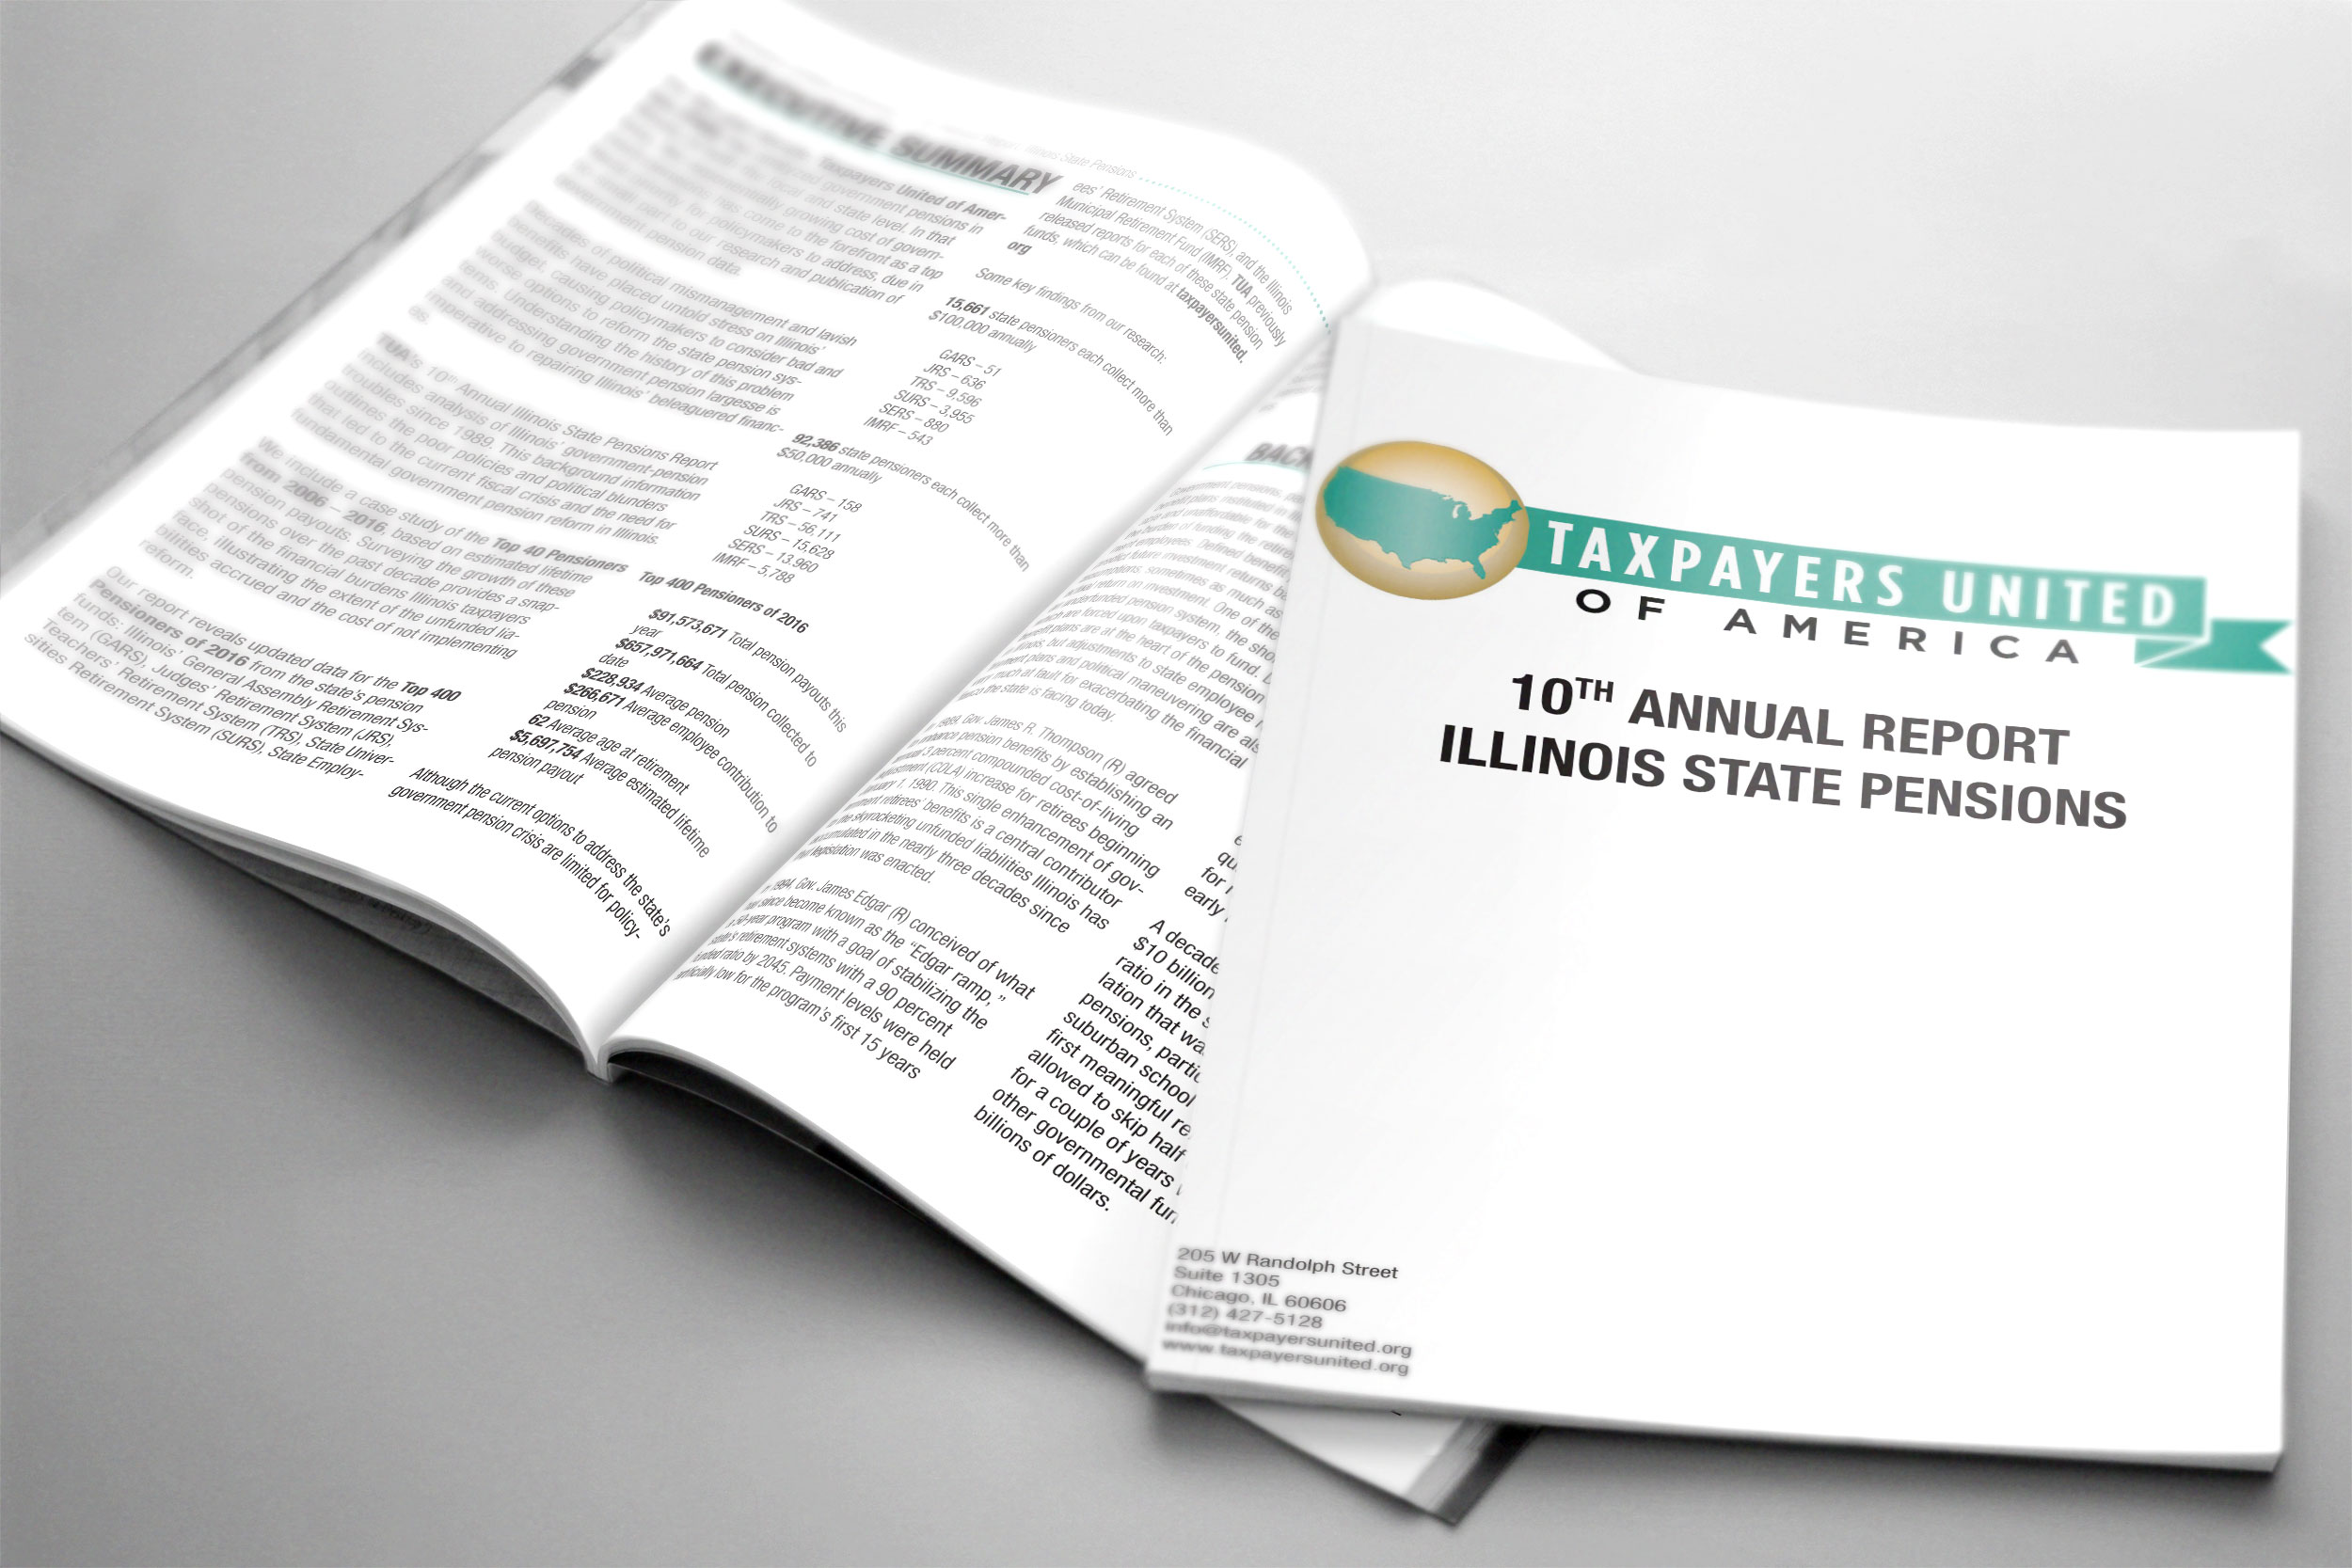 10th Annual Illinois State Pensions Report